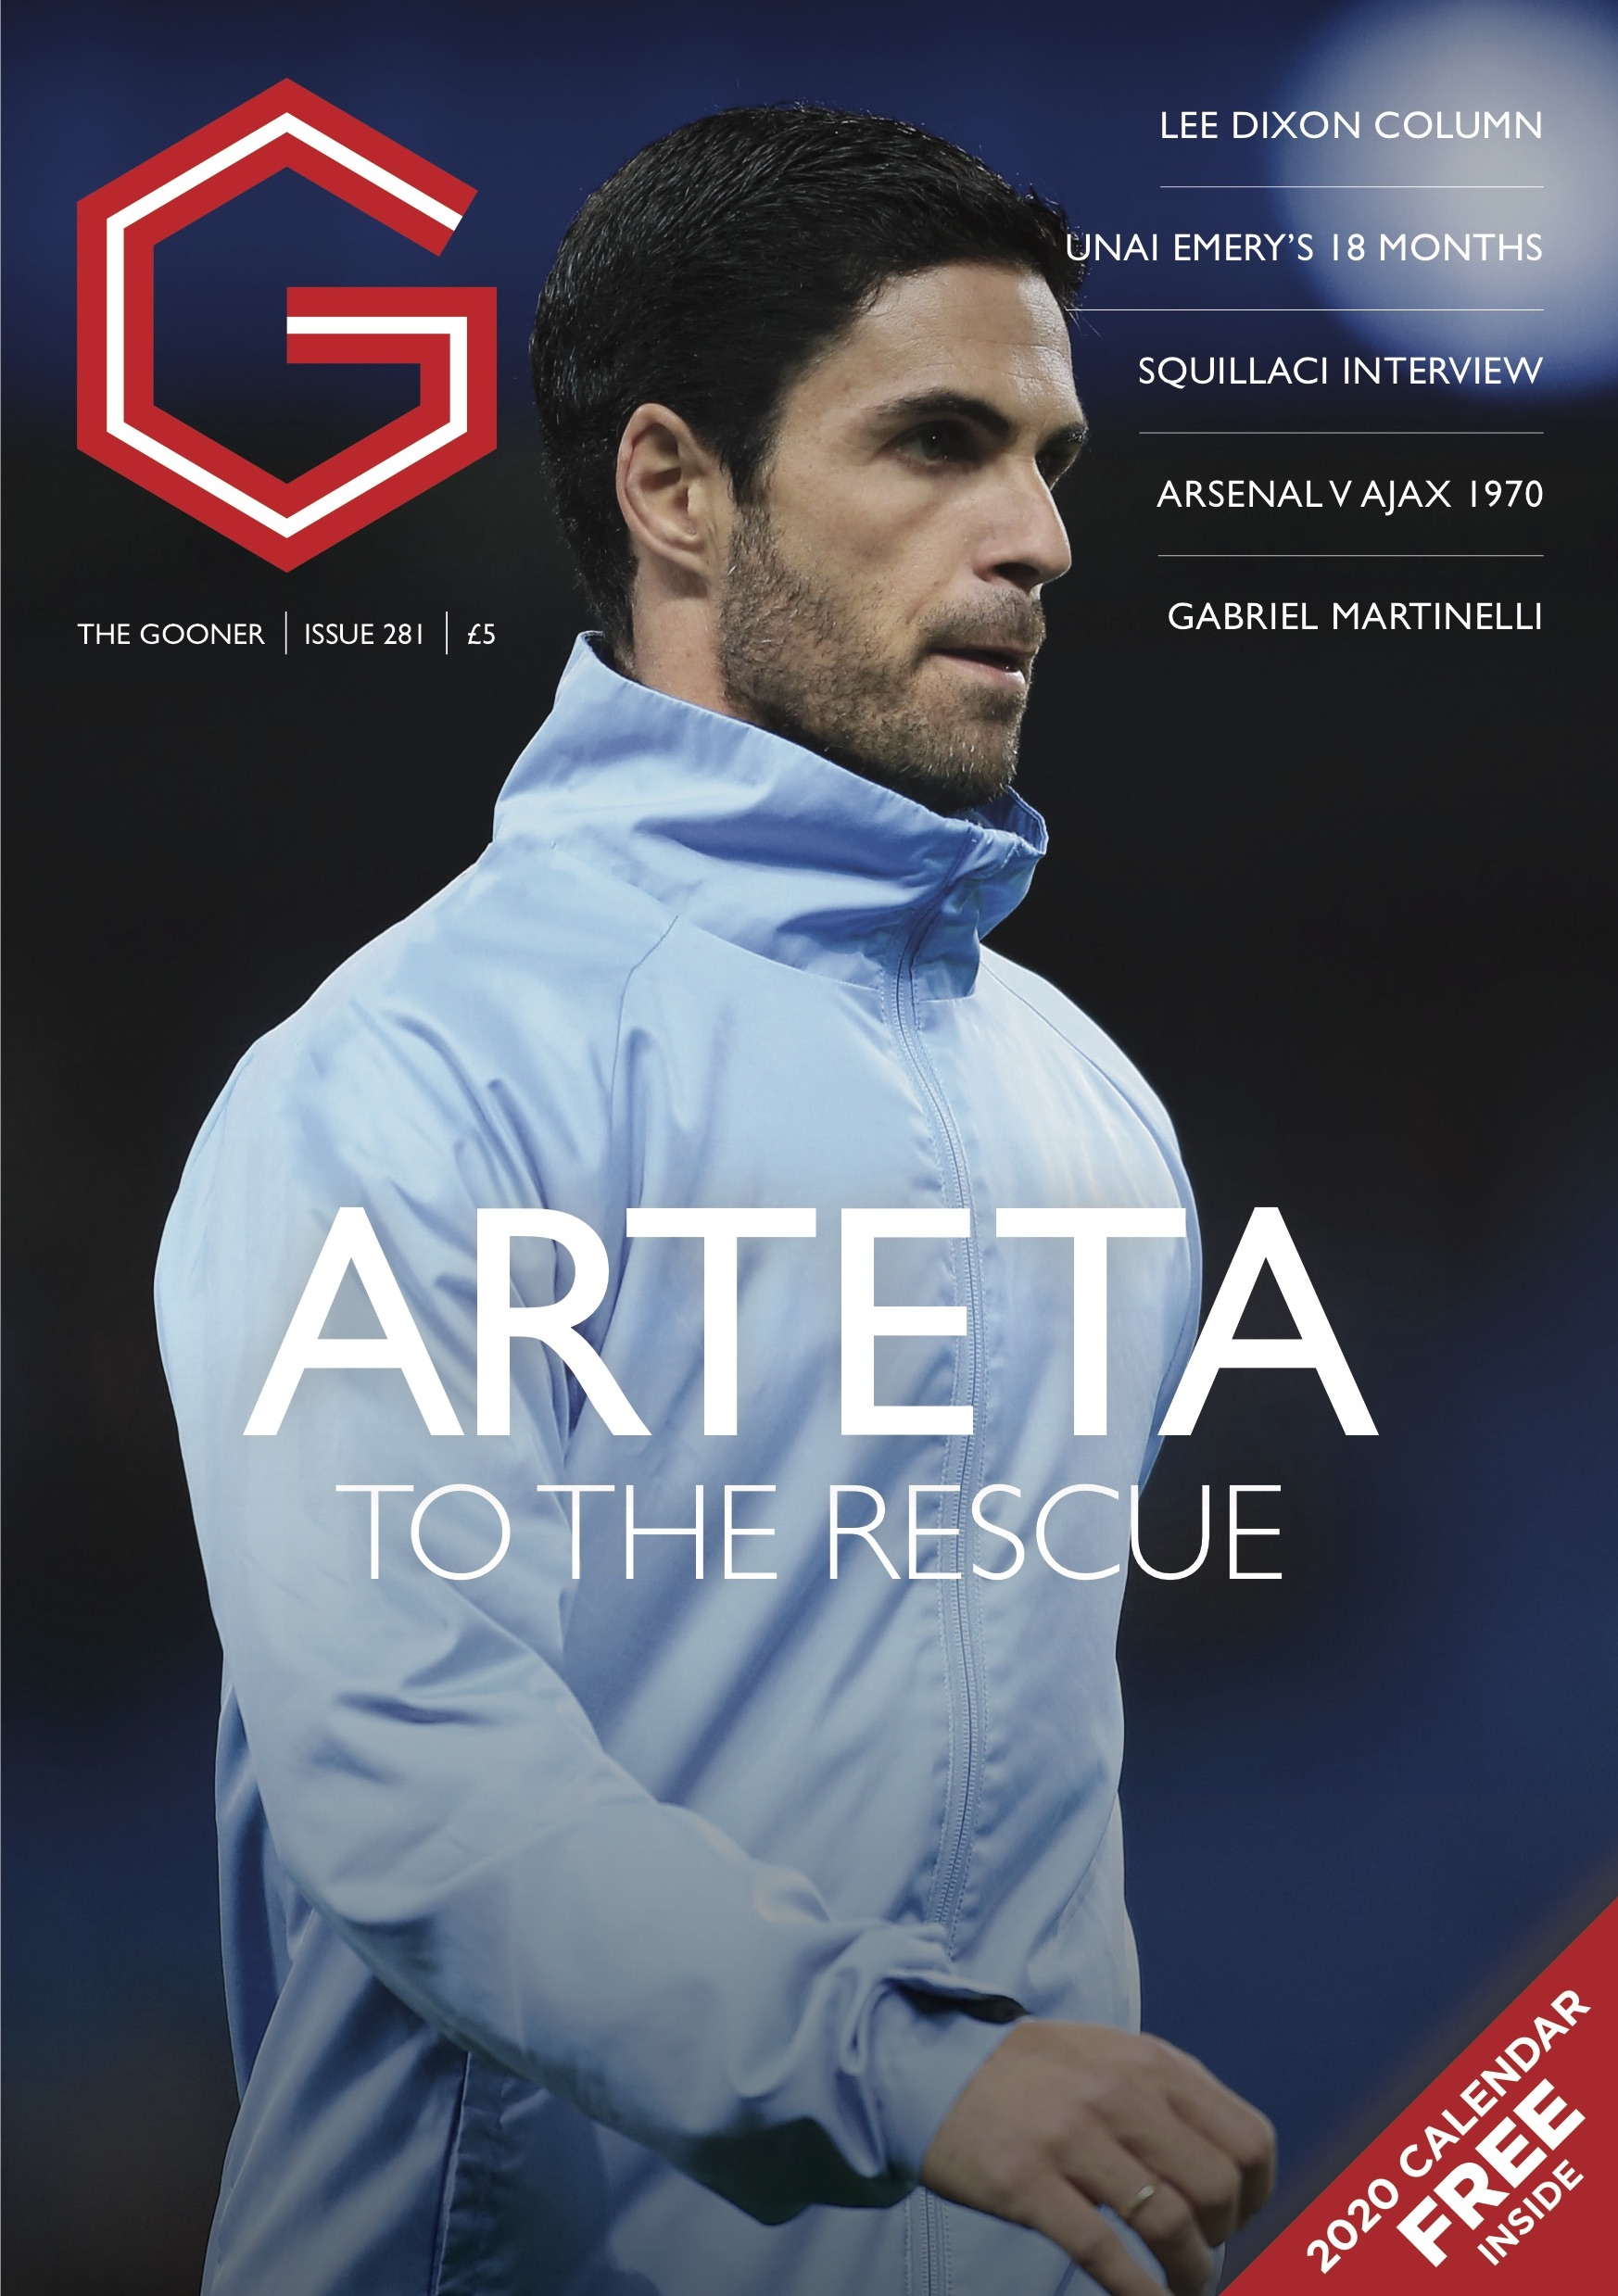 The Gooner Issue 281 (UK)